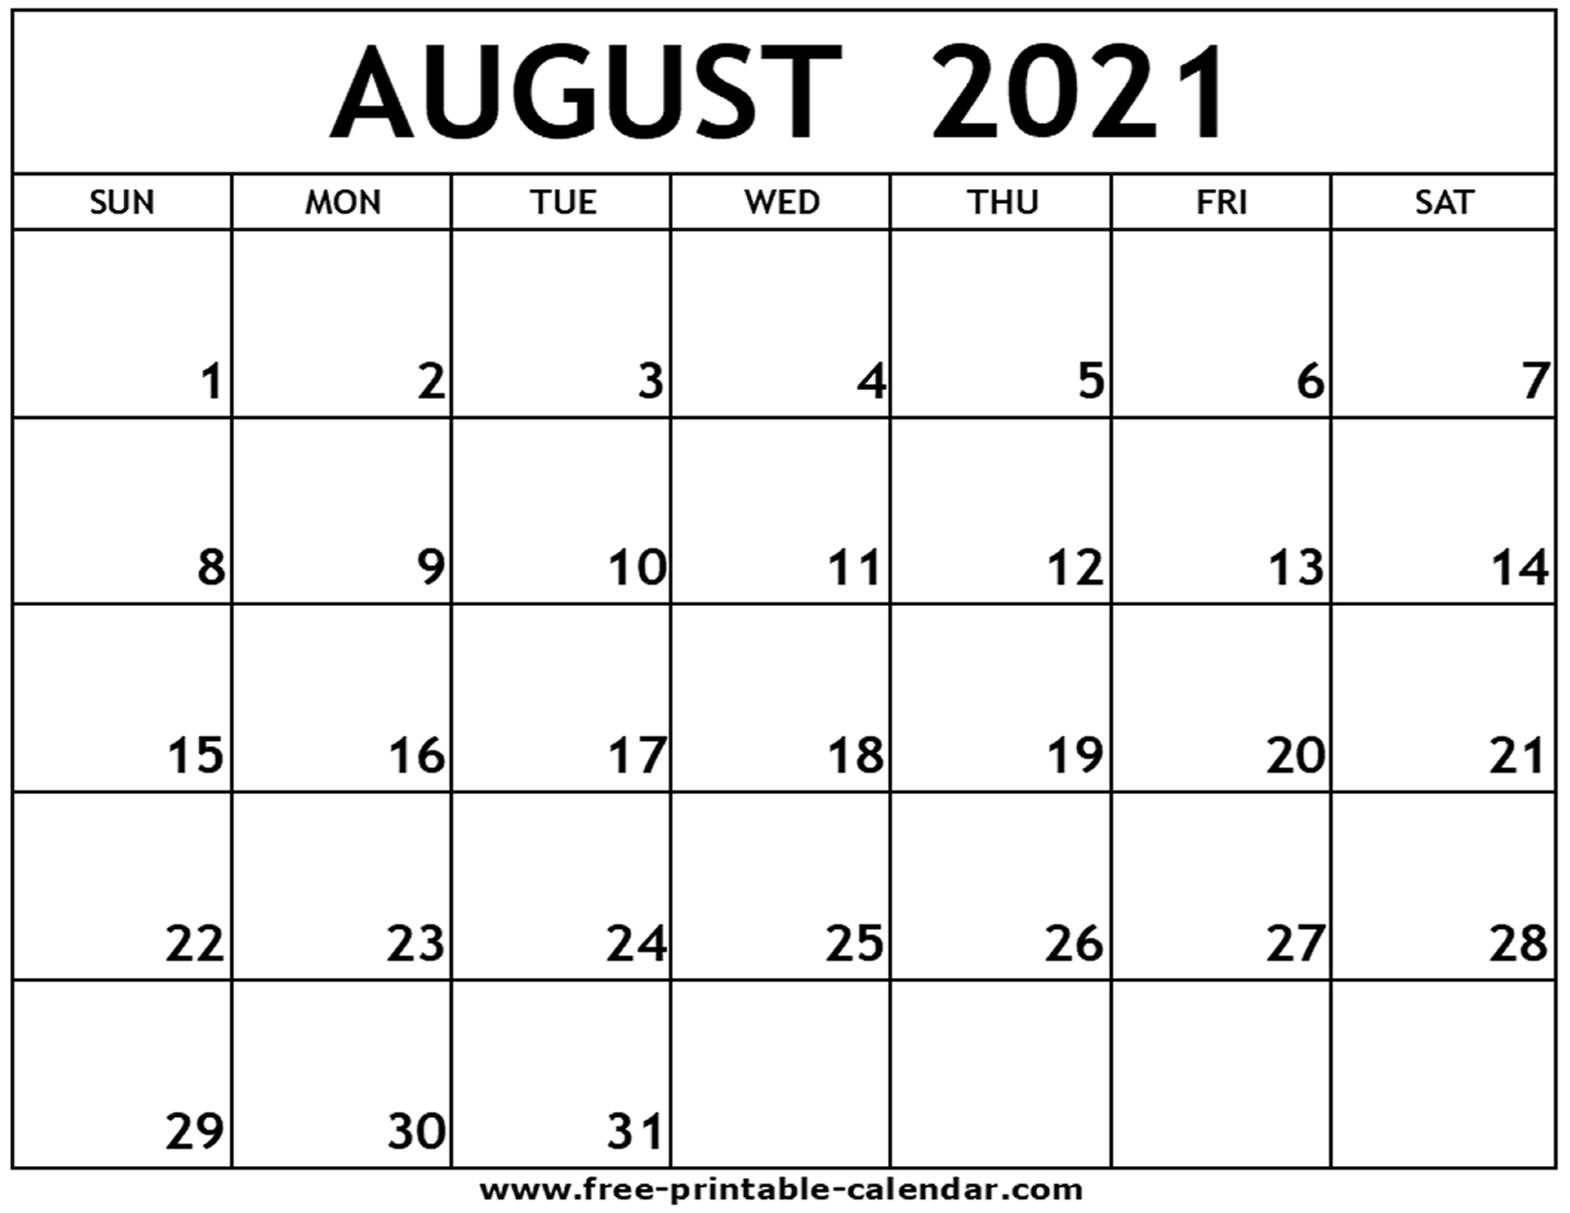 Collect August 2021 Calendar To Fill In